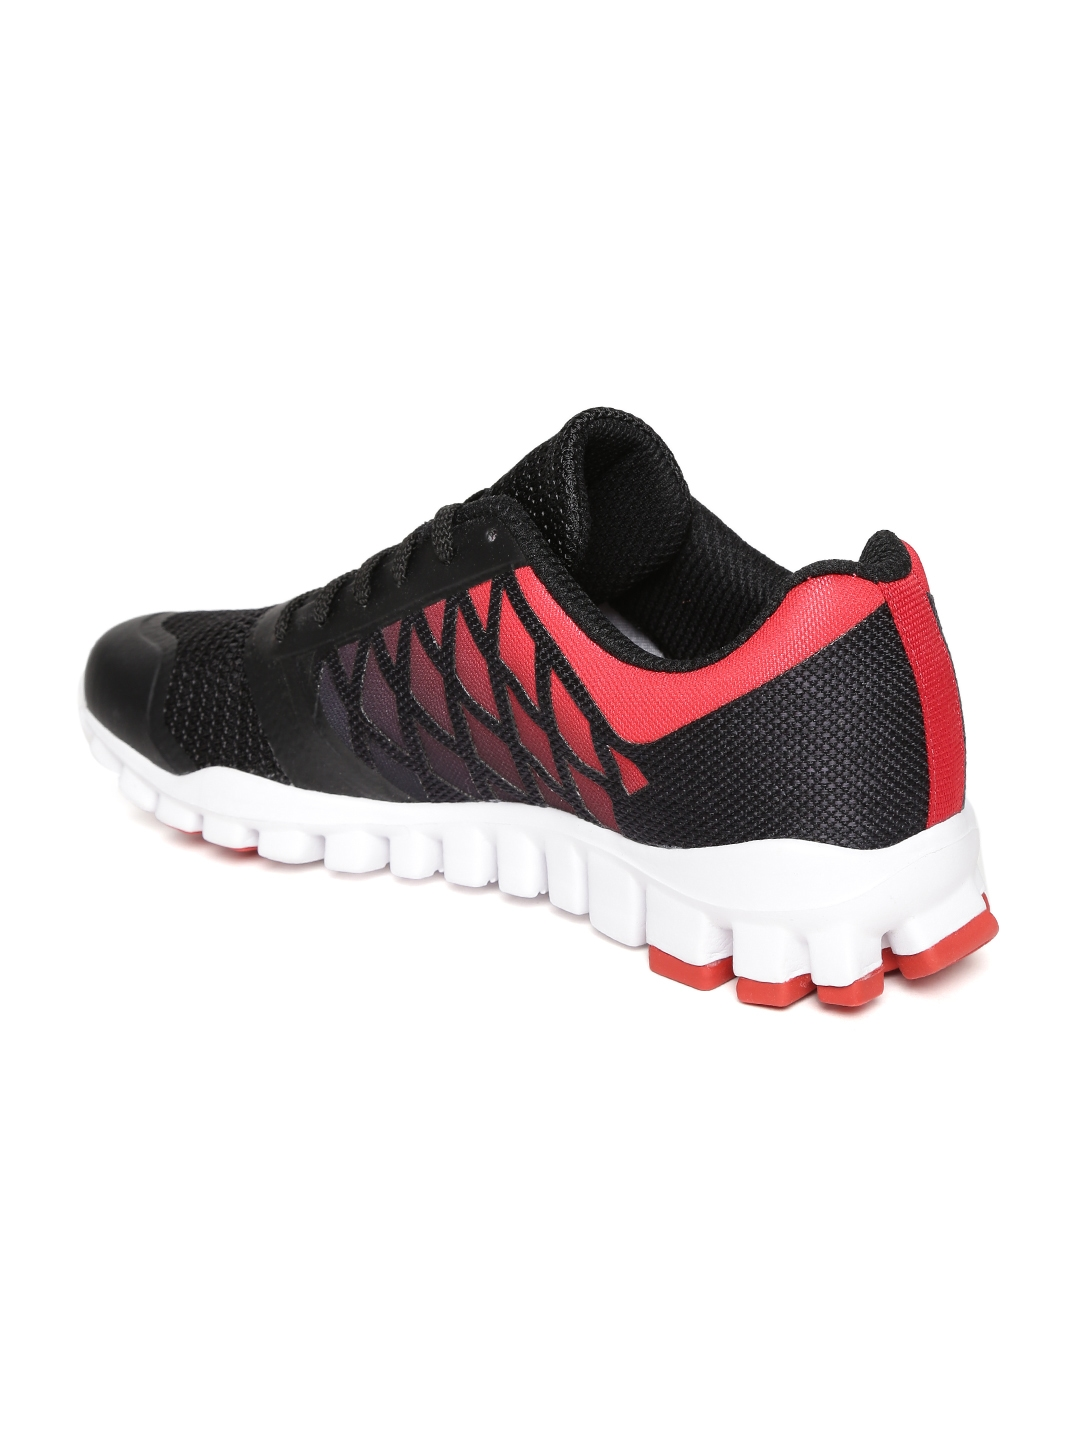 6596a732e63 Buy Reebok Men Black   Red Realflex TR Xtreme Running Shoes - Sports ...